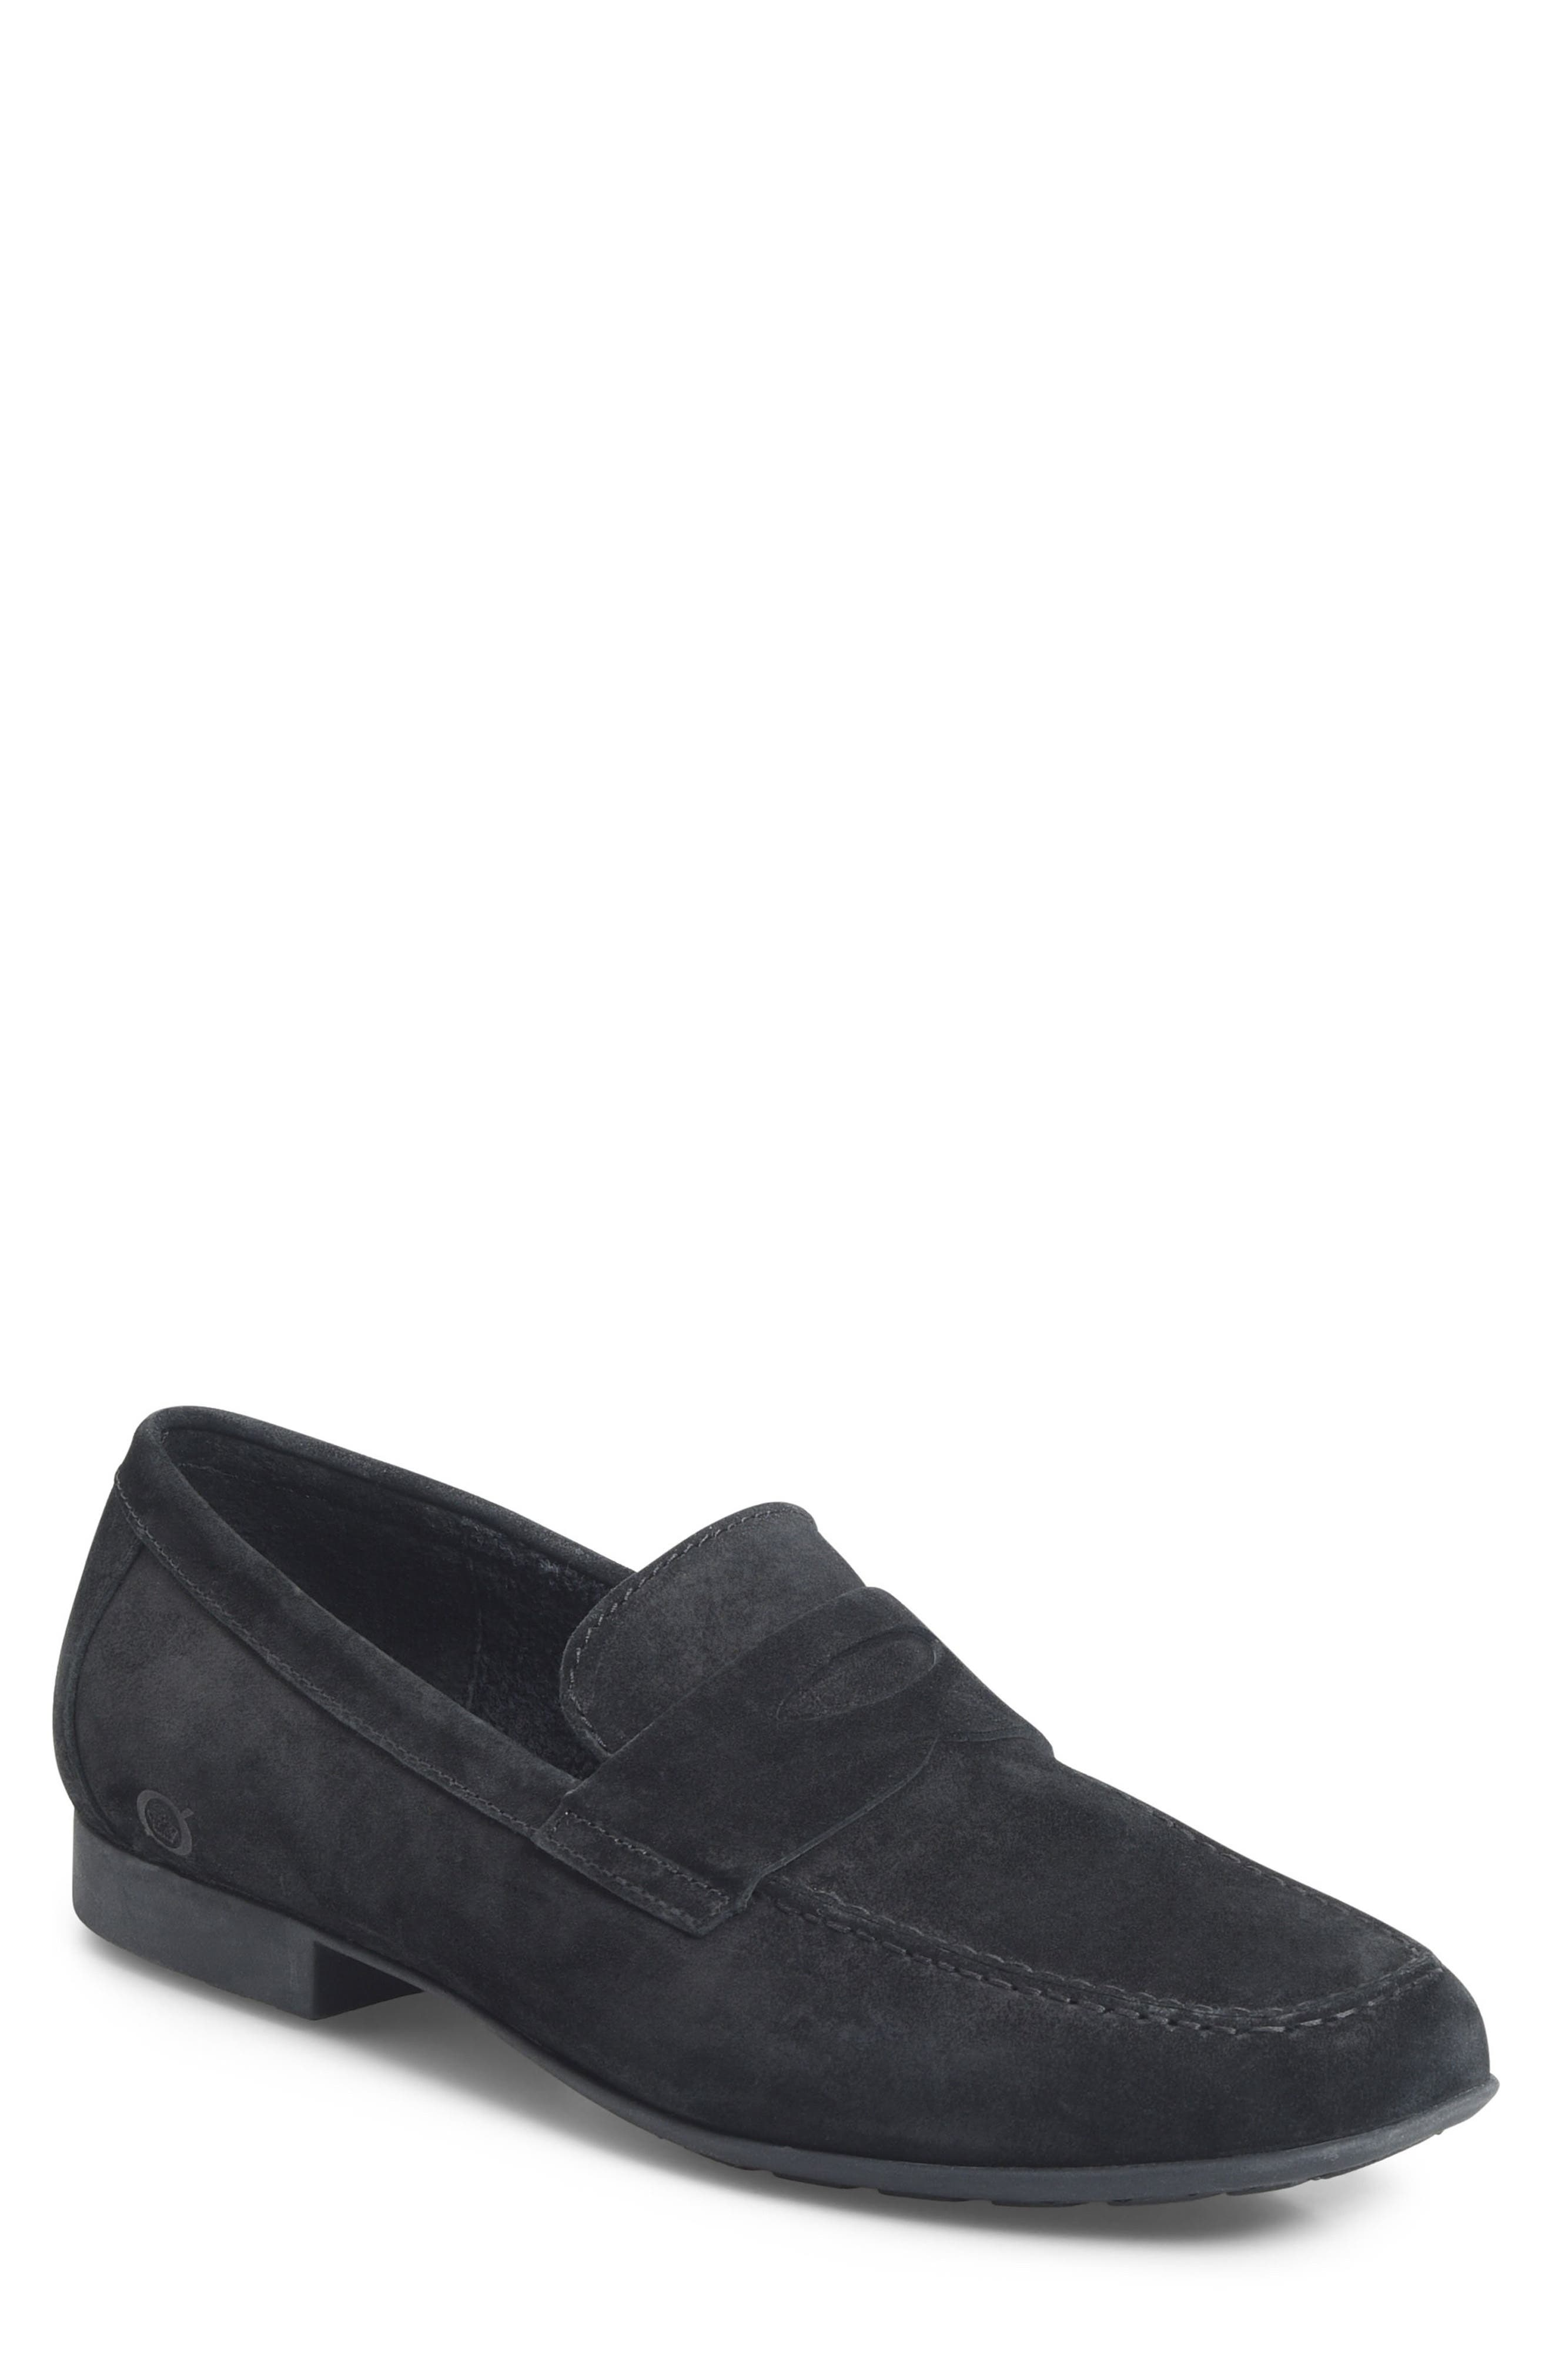 'Dave' Penny Loafer,                             Main thumbnail 1, color,                             003